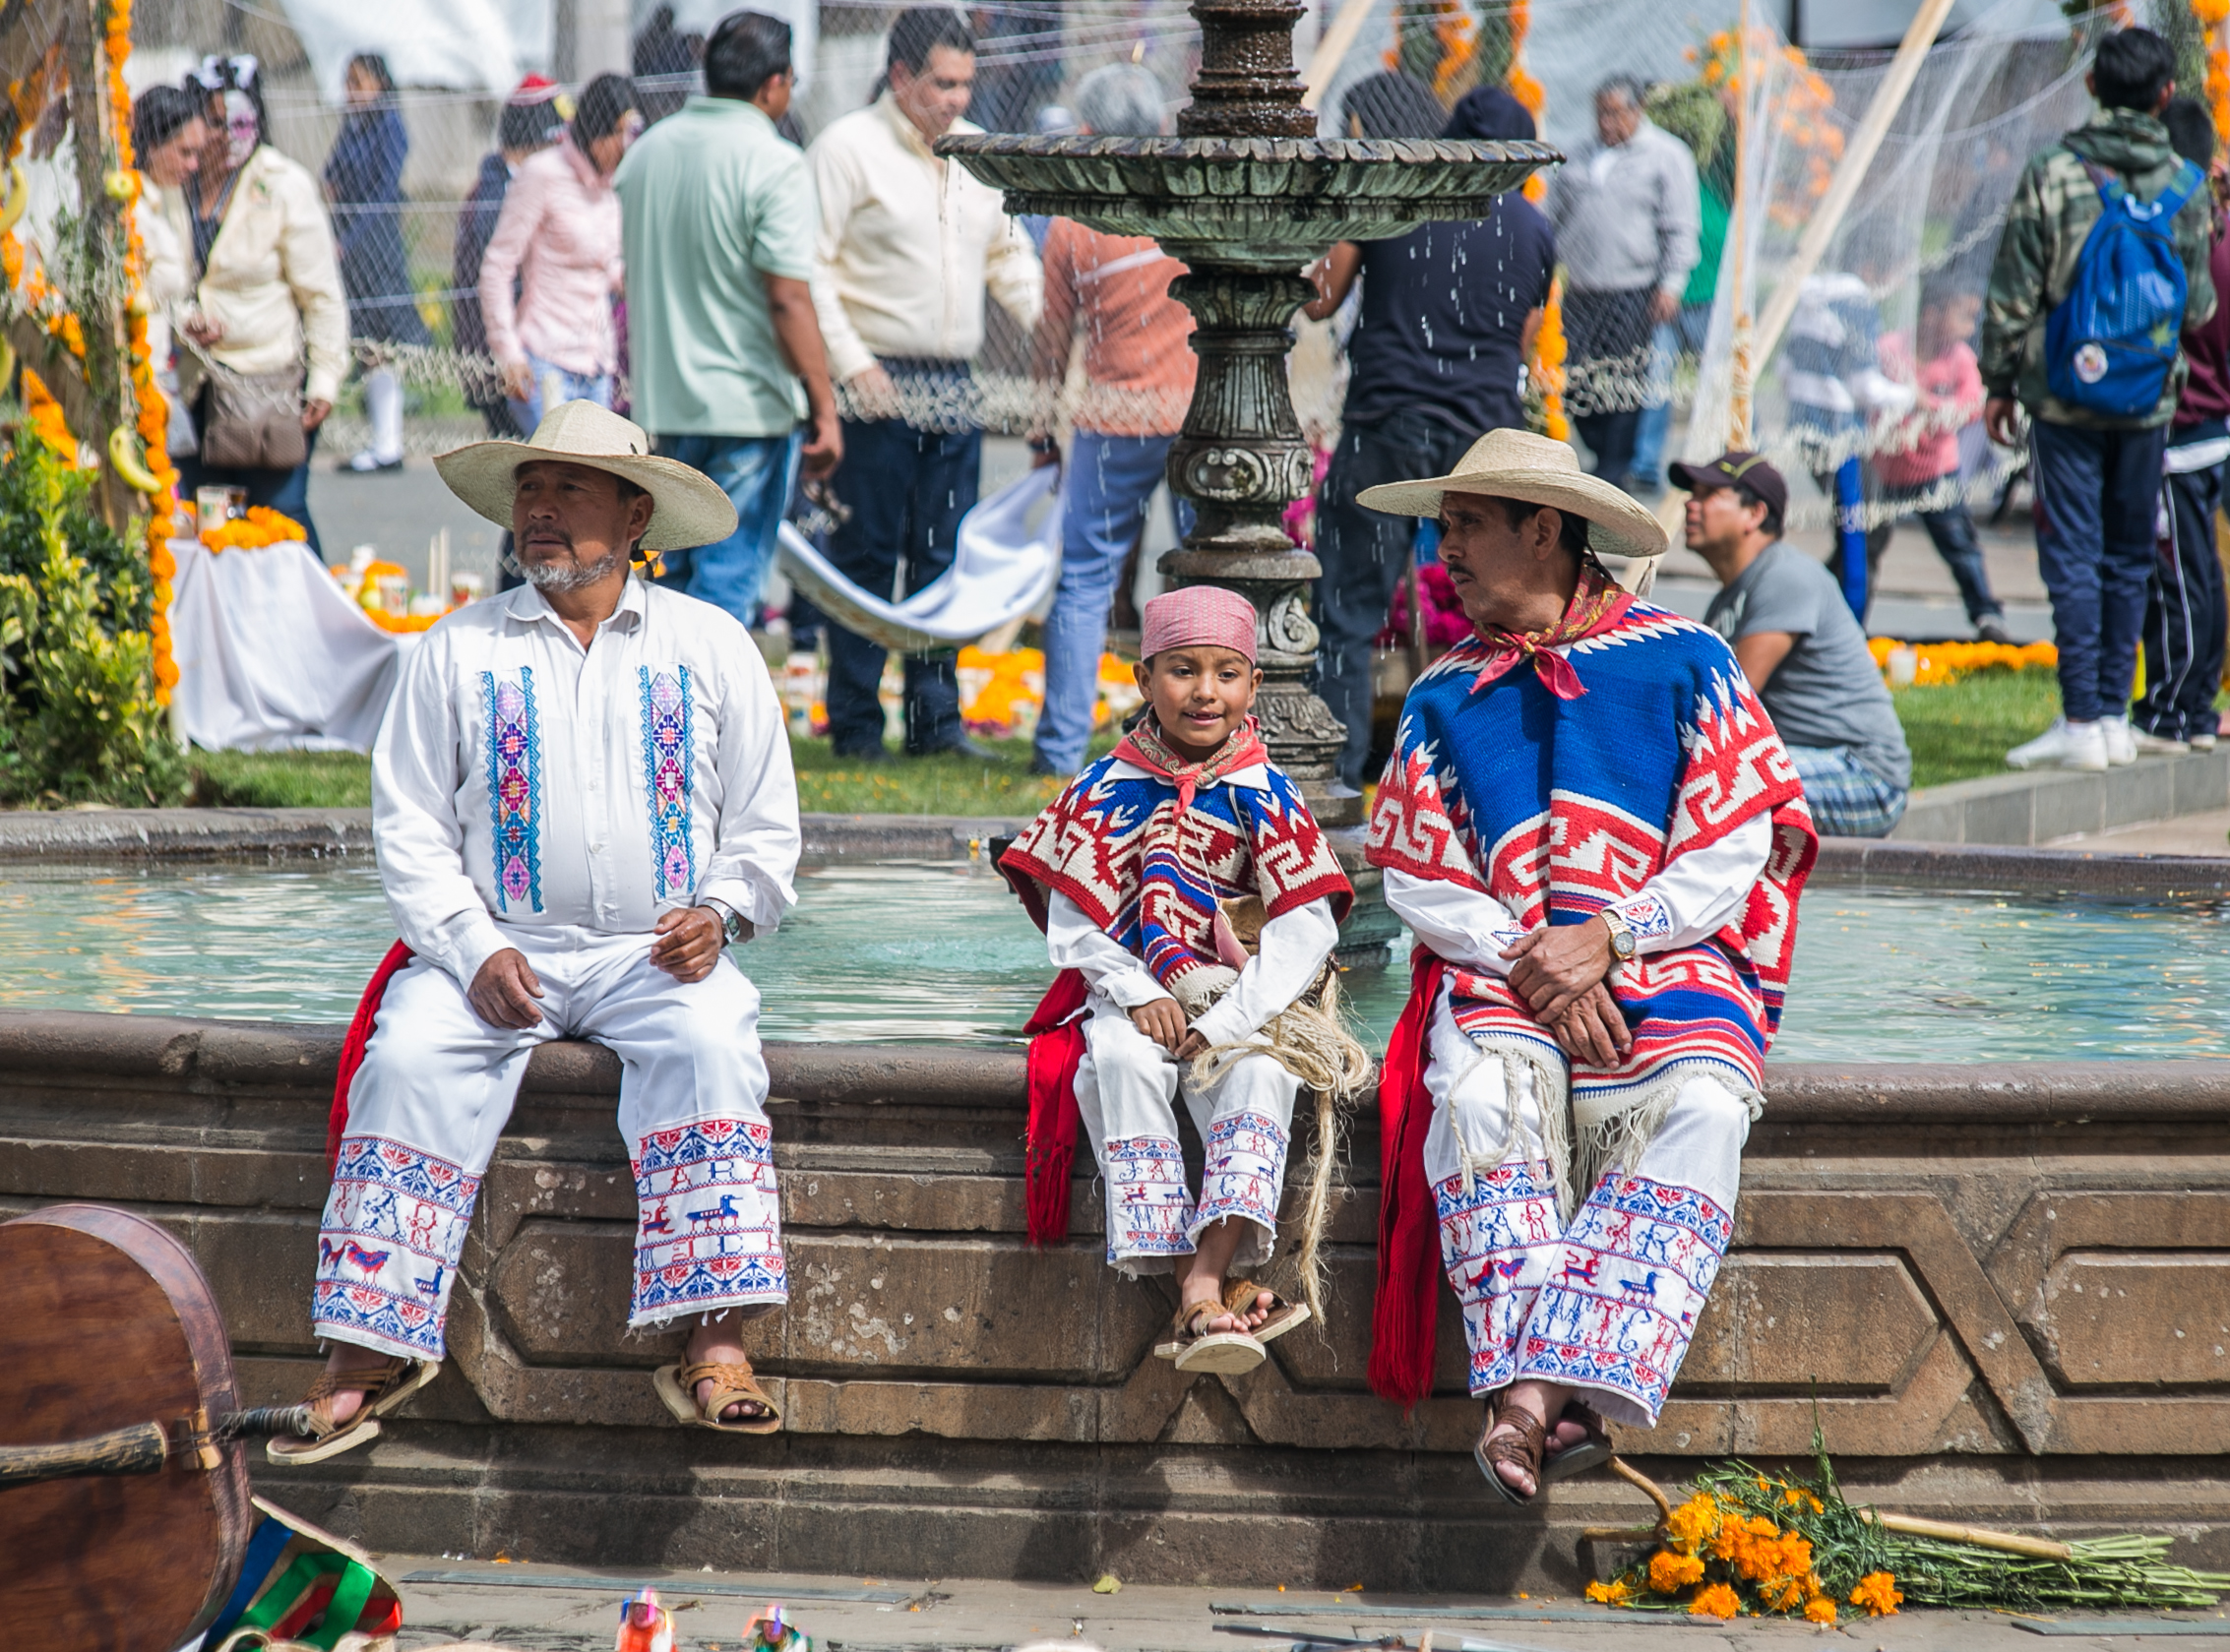 10/31/17 - 2:00pm - Dancers, dressed in traditional performance-wear, take a break on the side of the fountain in the Patzcuaro town square.